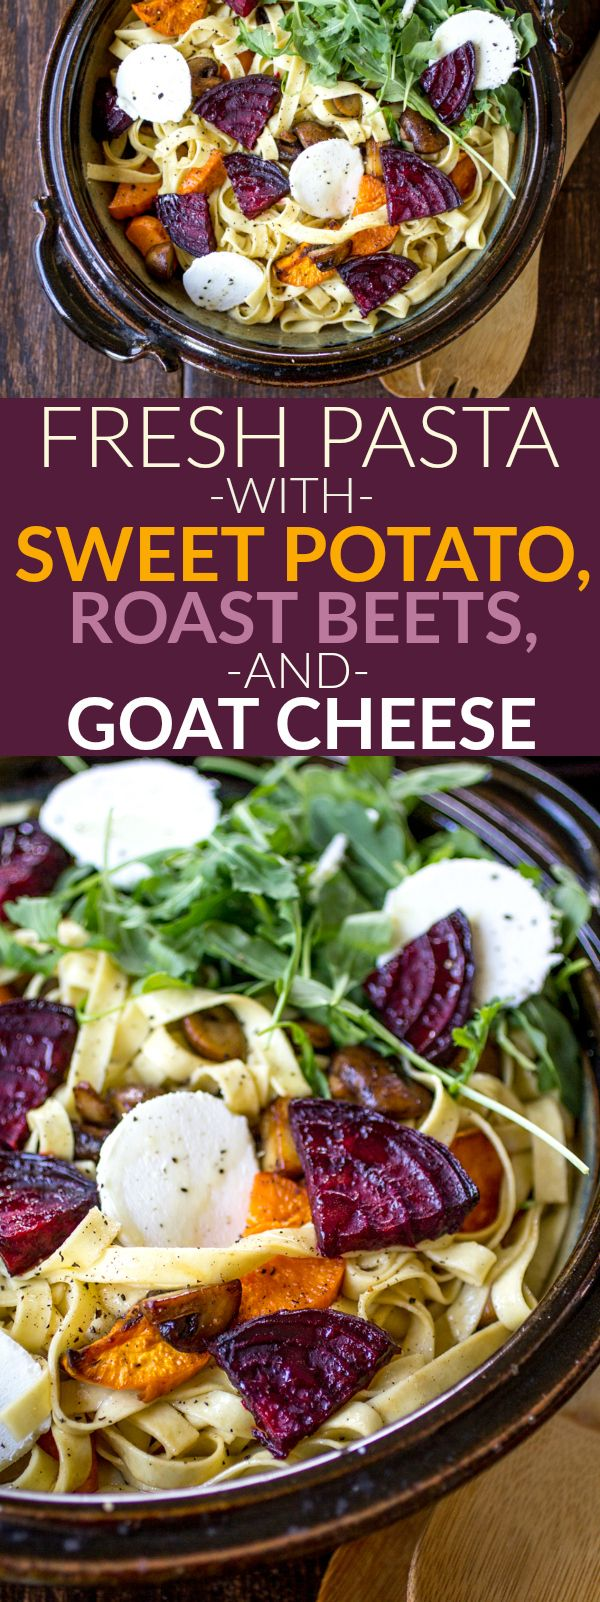 Fresh Pasta with Sweet Potato, Roasted Beet, and Goat Cheese http://thewanderlustkitchen.com/fresh-pasta-sweet-potato-roasted-beet-goat-cheese/